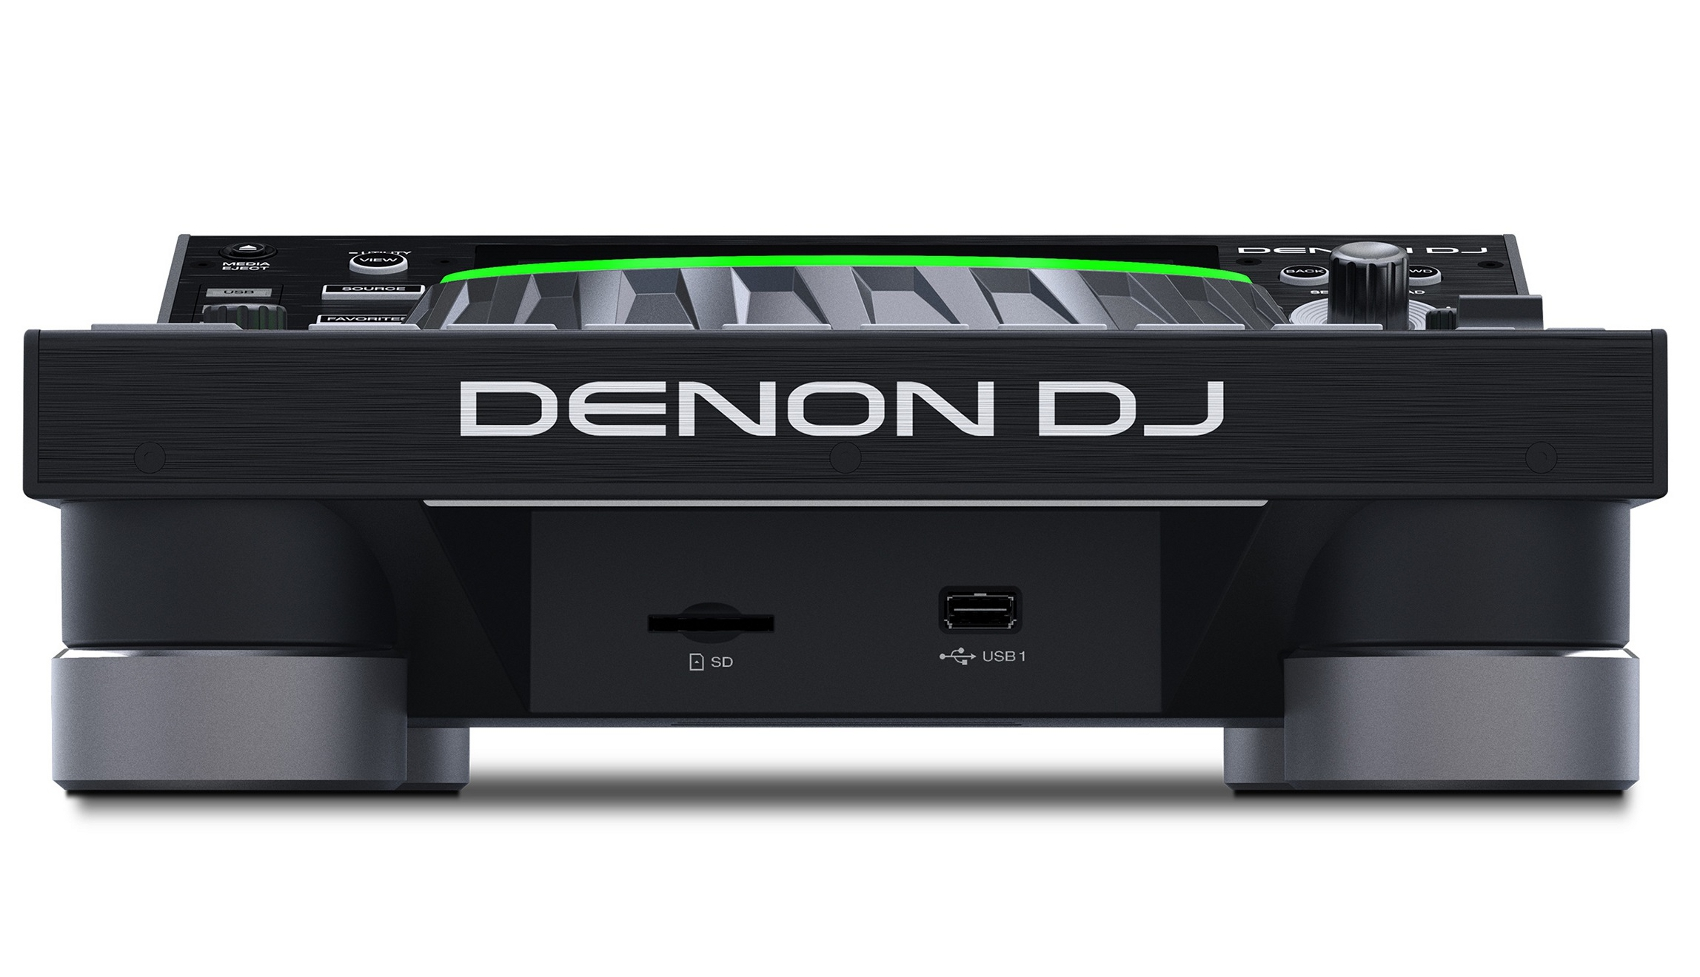 DENON DJ DC5000 PRIME LETTORE MEDIA PLAYER PER DJ USB SD CON DISPLAY HD 7 MULTI-TOUCH 2